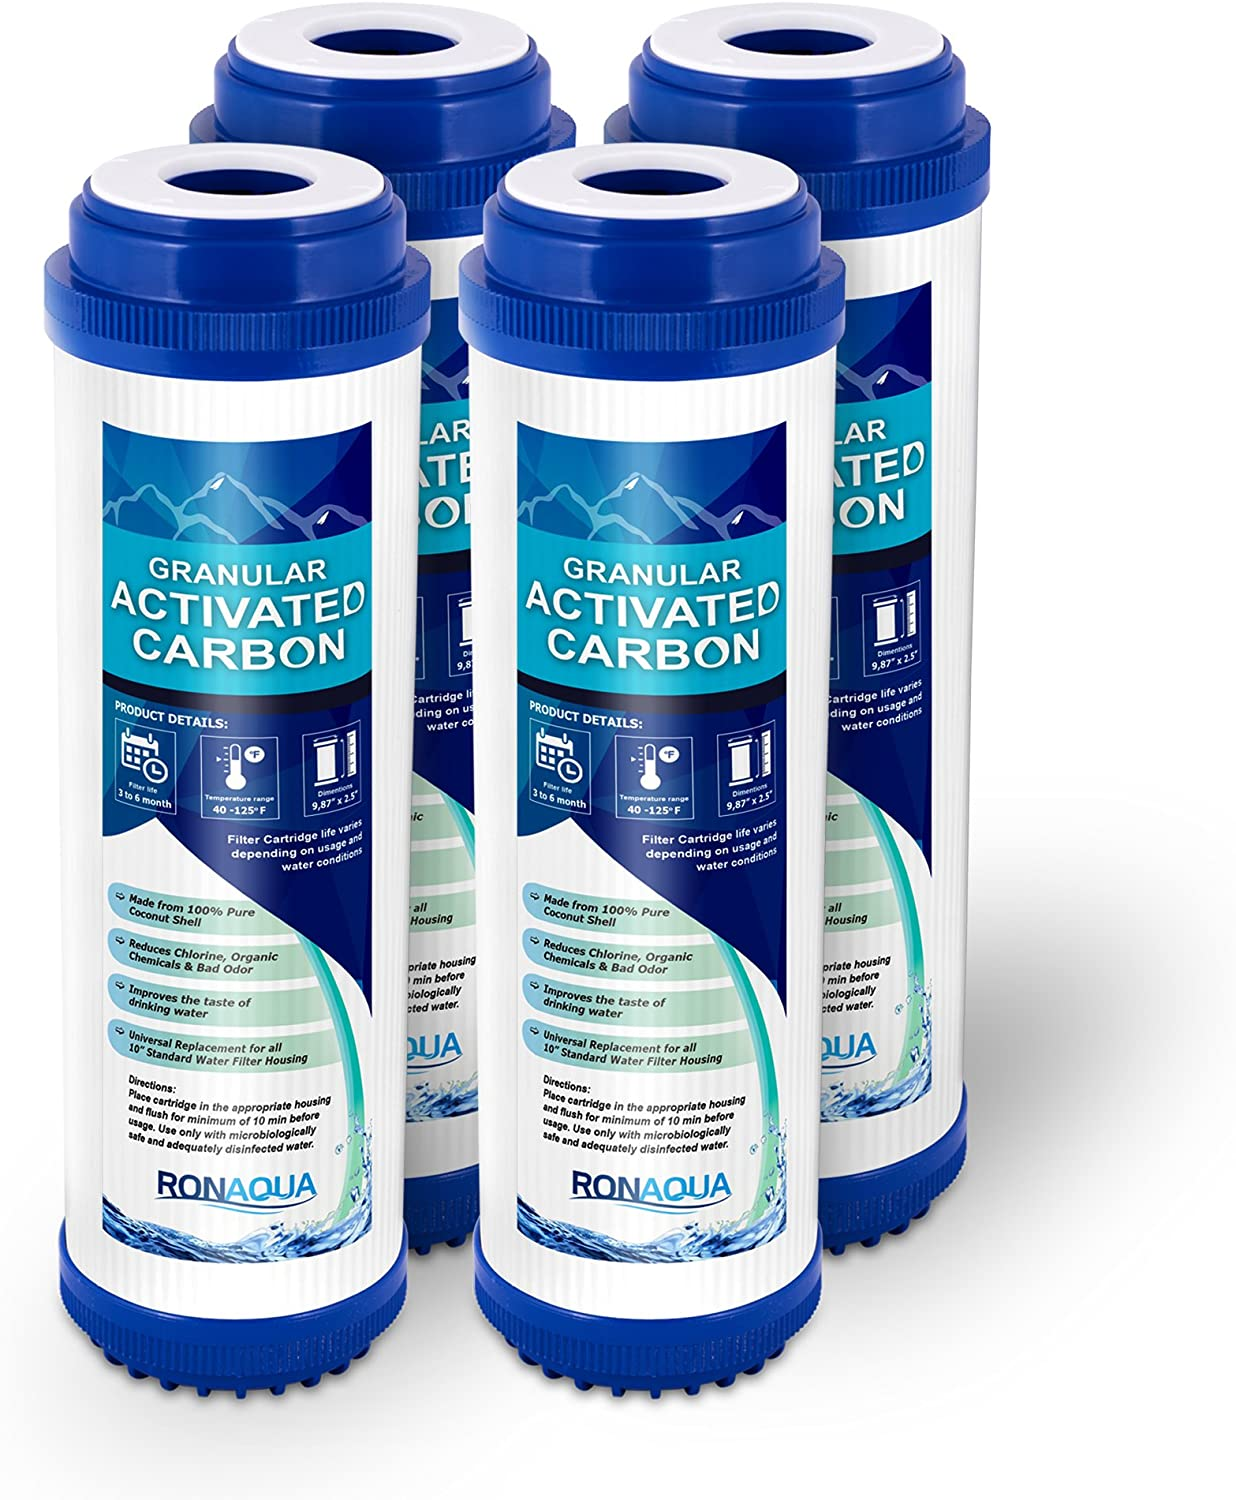 Ronaqua Granular Activated Carbon Water Filter Cartridge Well-Matched with WFPFC9001, AP117, GAC-10, FXUTC, D-20A, GAC1 (4 Pack)